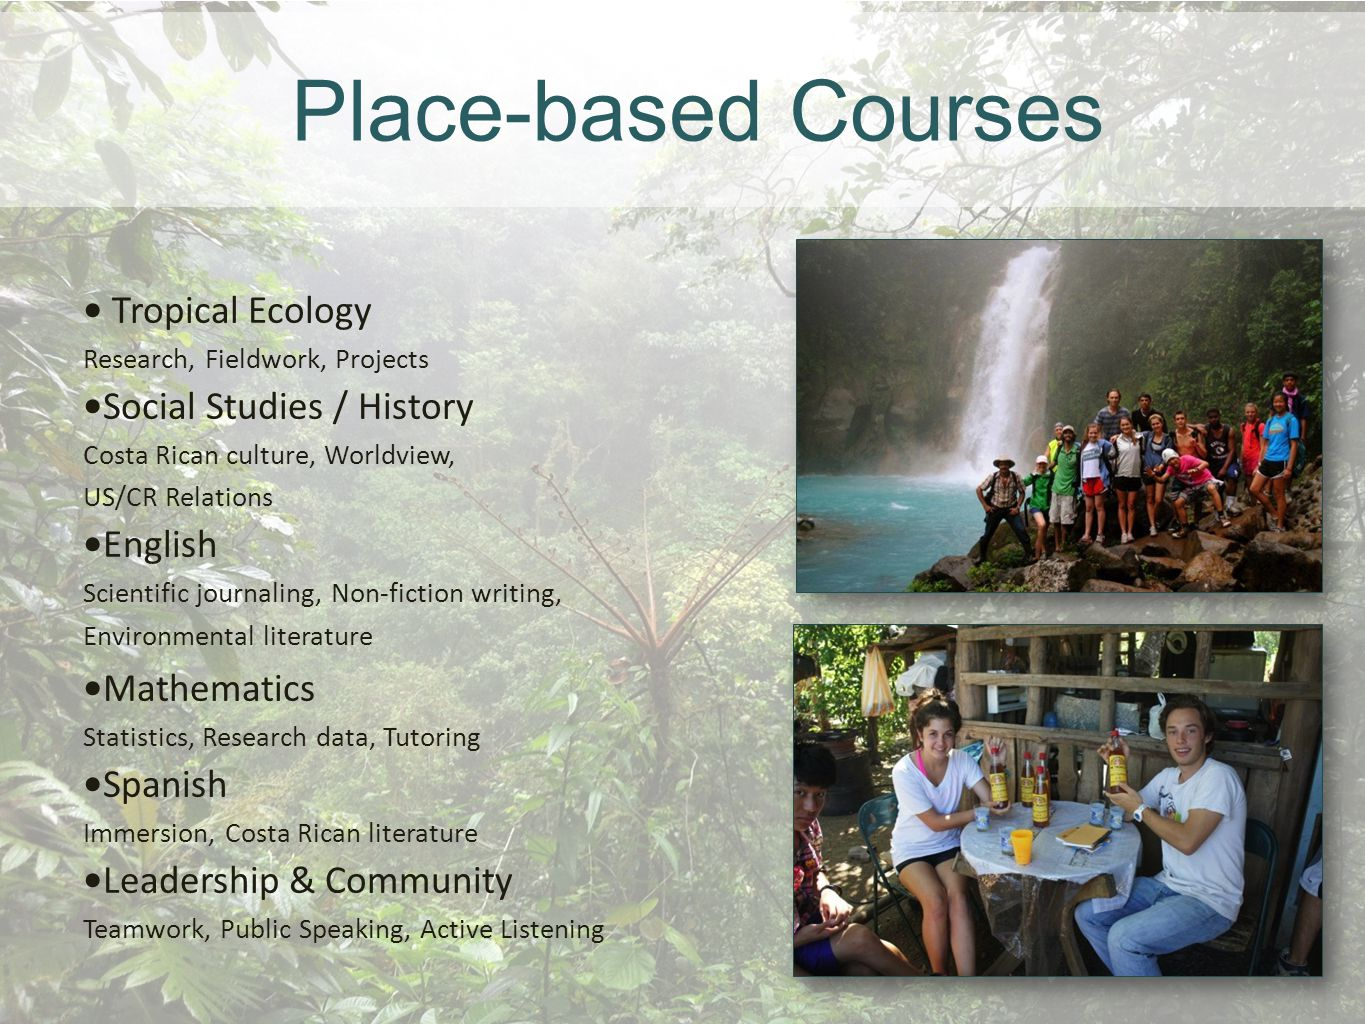 Tropical Ecology Marine Ecosystems Watershed Studies Research Field work Projects